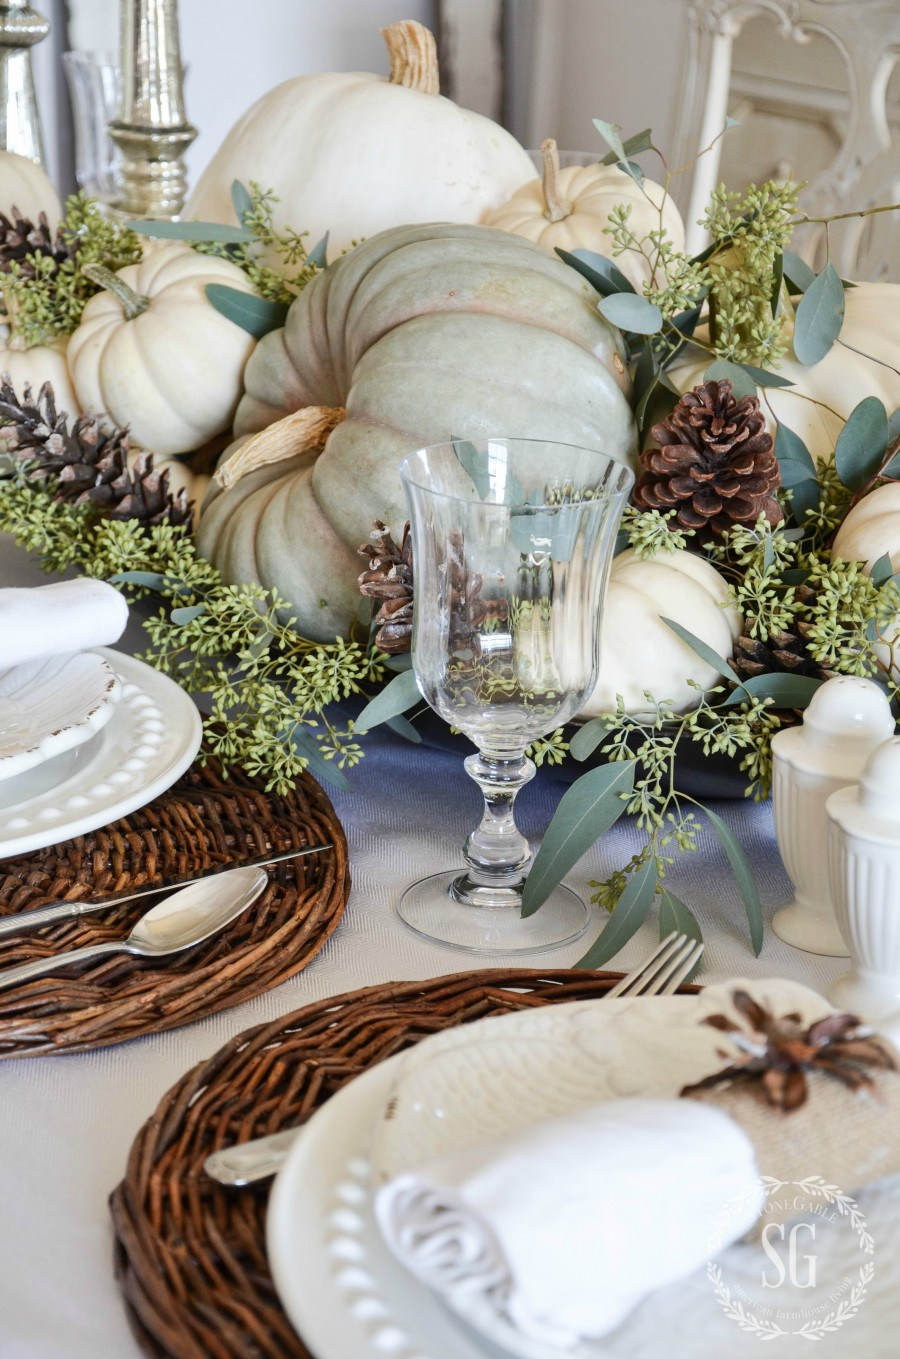 You can't go wrong with Mother Nature. - Forget linens, nature is where it's at this fall. Lay some colorful, thick magnolia leaves down the center of your table for a rustic runner.